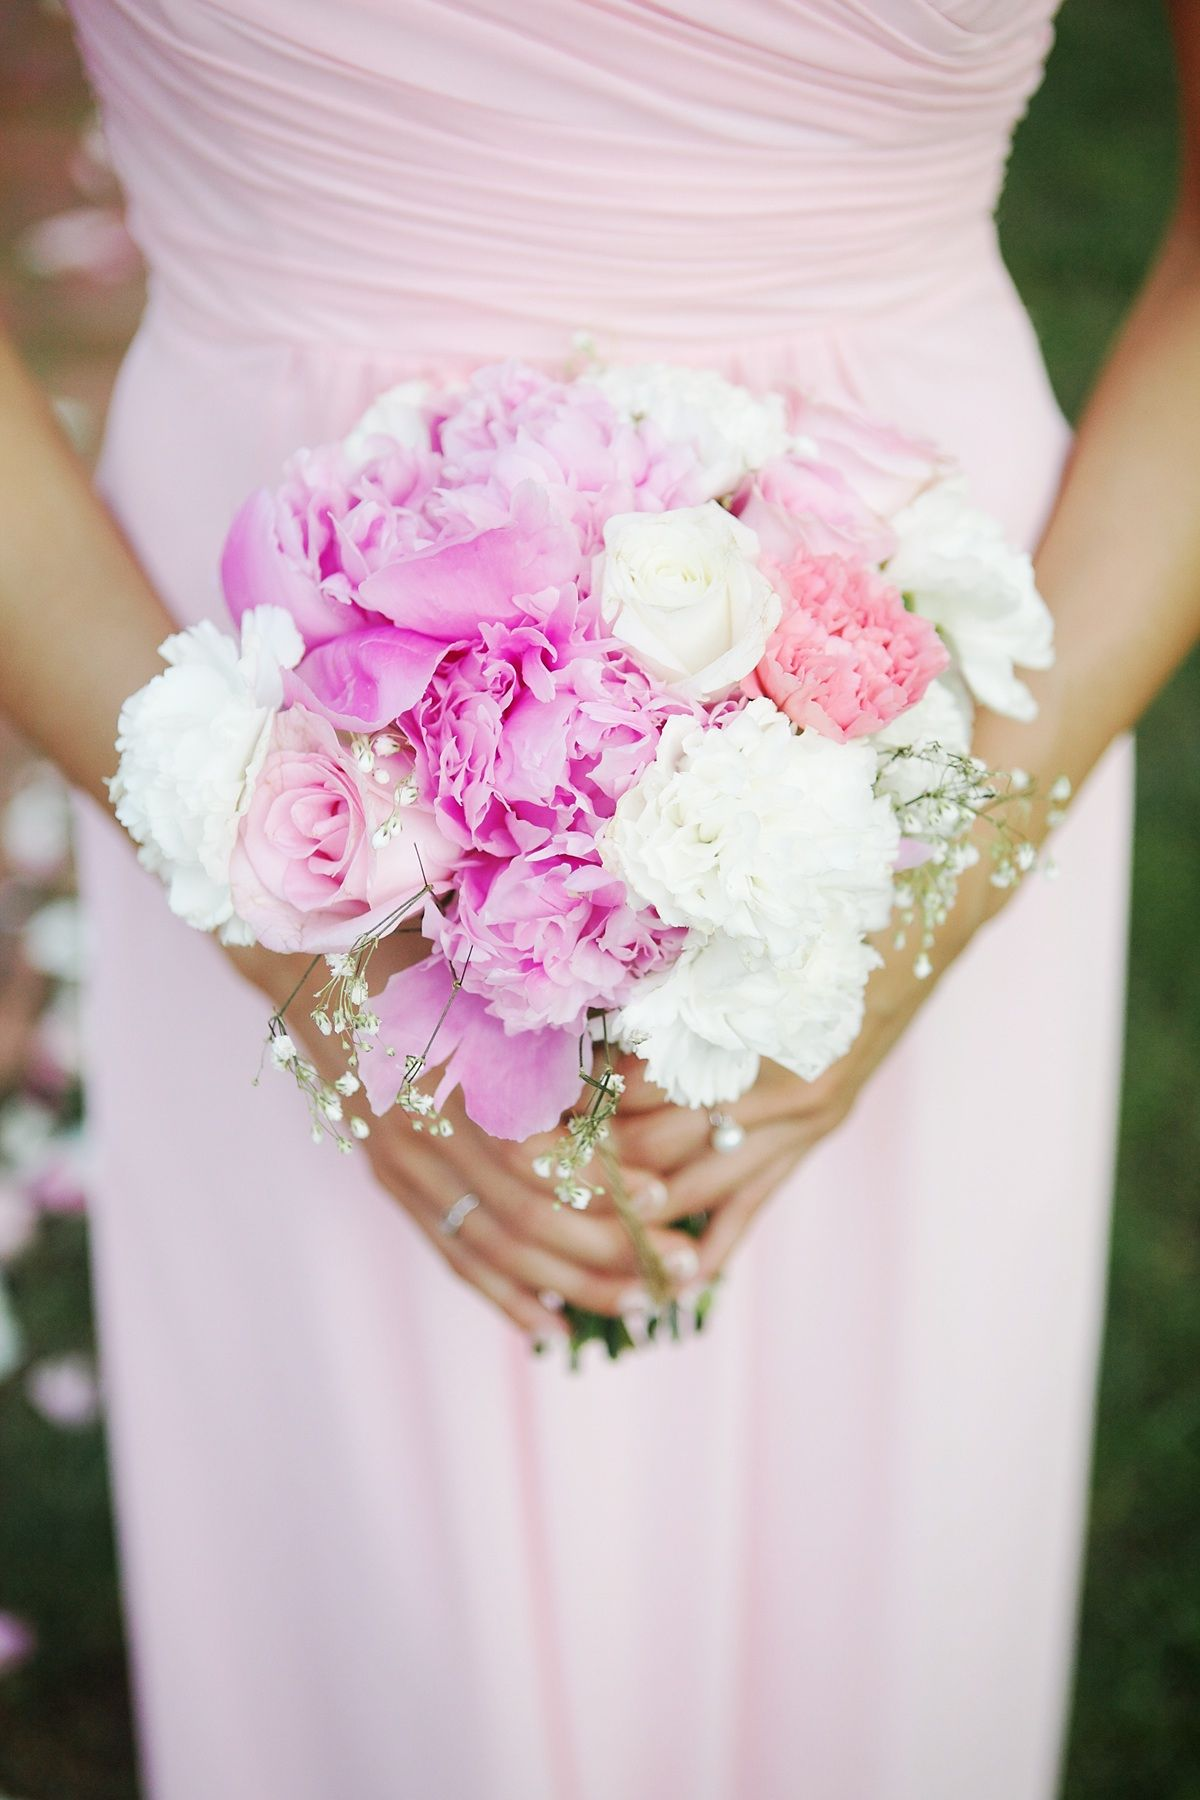 Rose Carnation Peony And Babies Breath Bouquet Carnation Wedding Bouquet Carnation Wedding Wedding